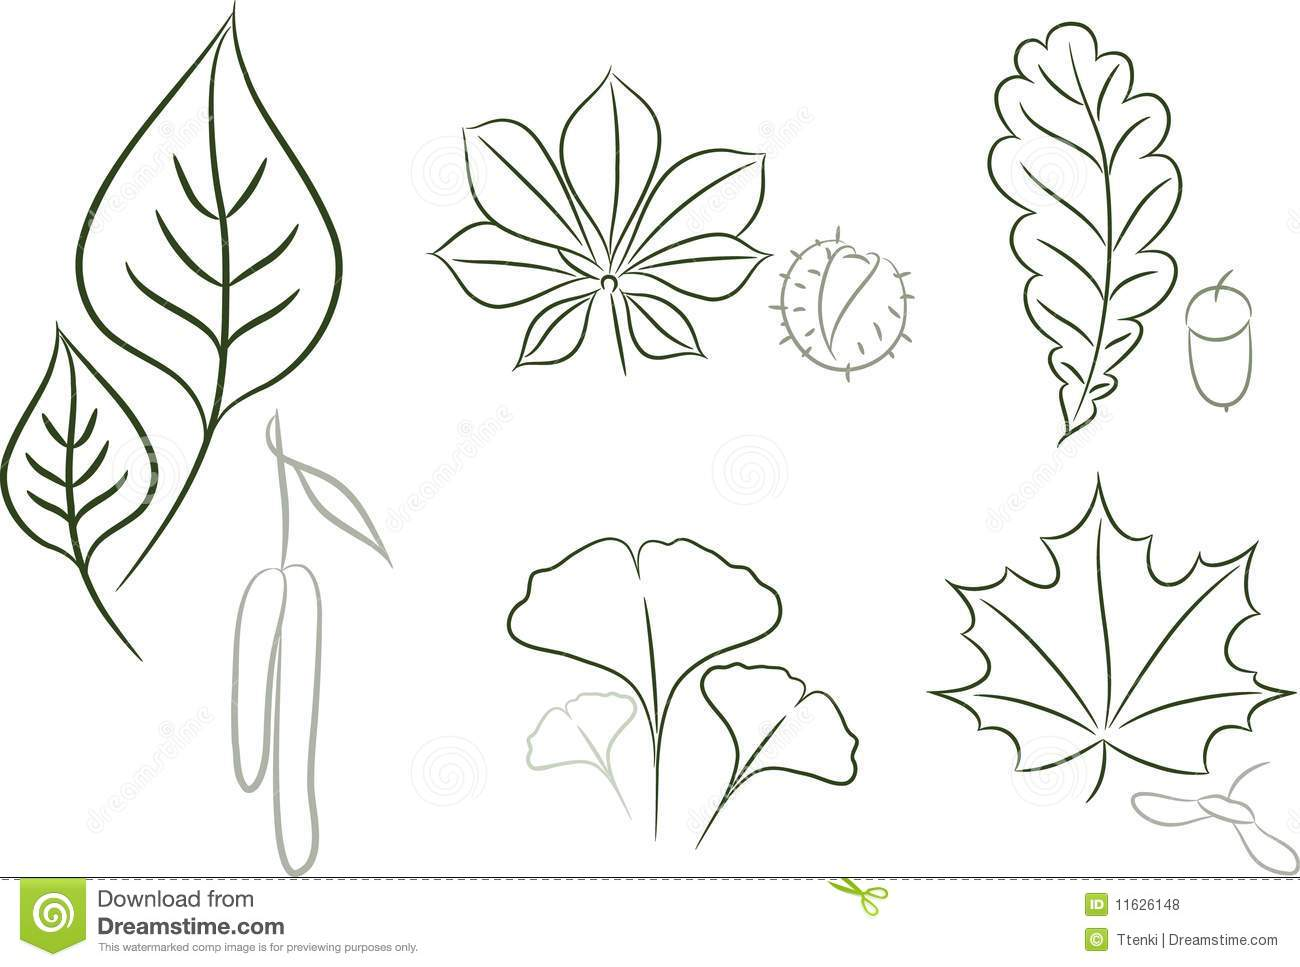 Leaves sketch of leaf bearing trees